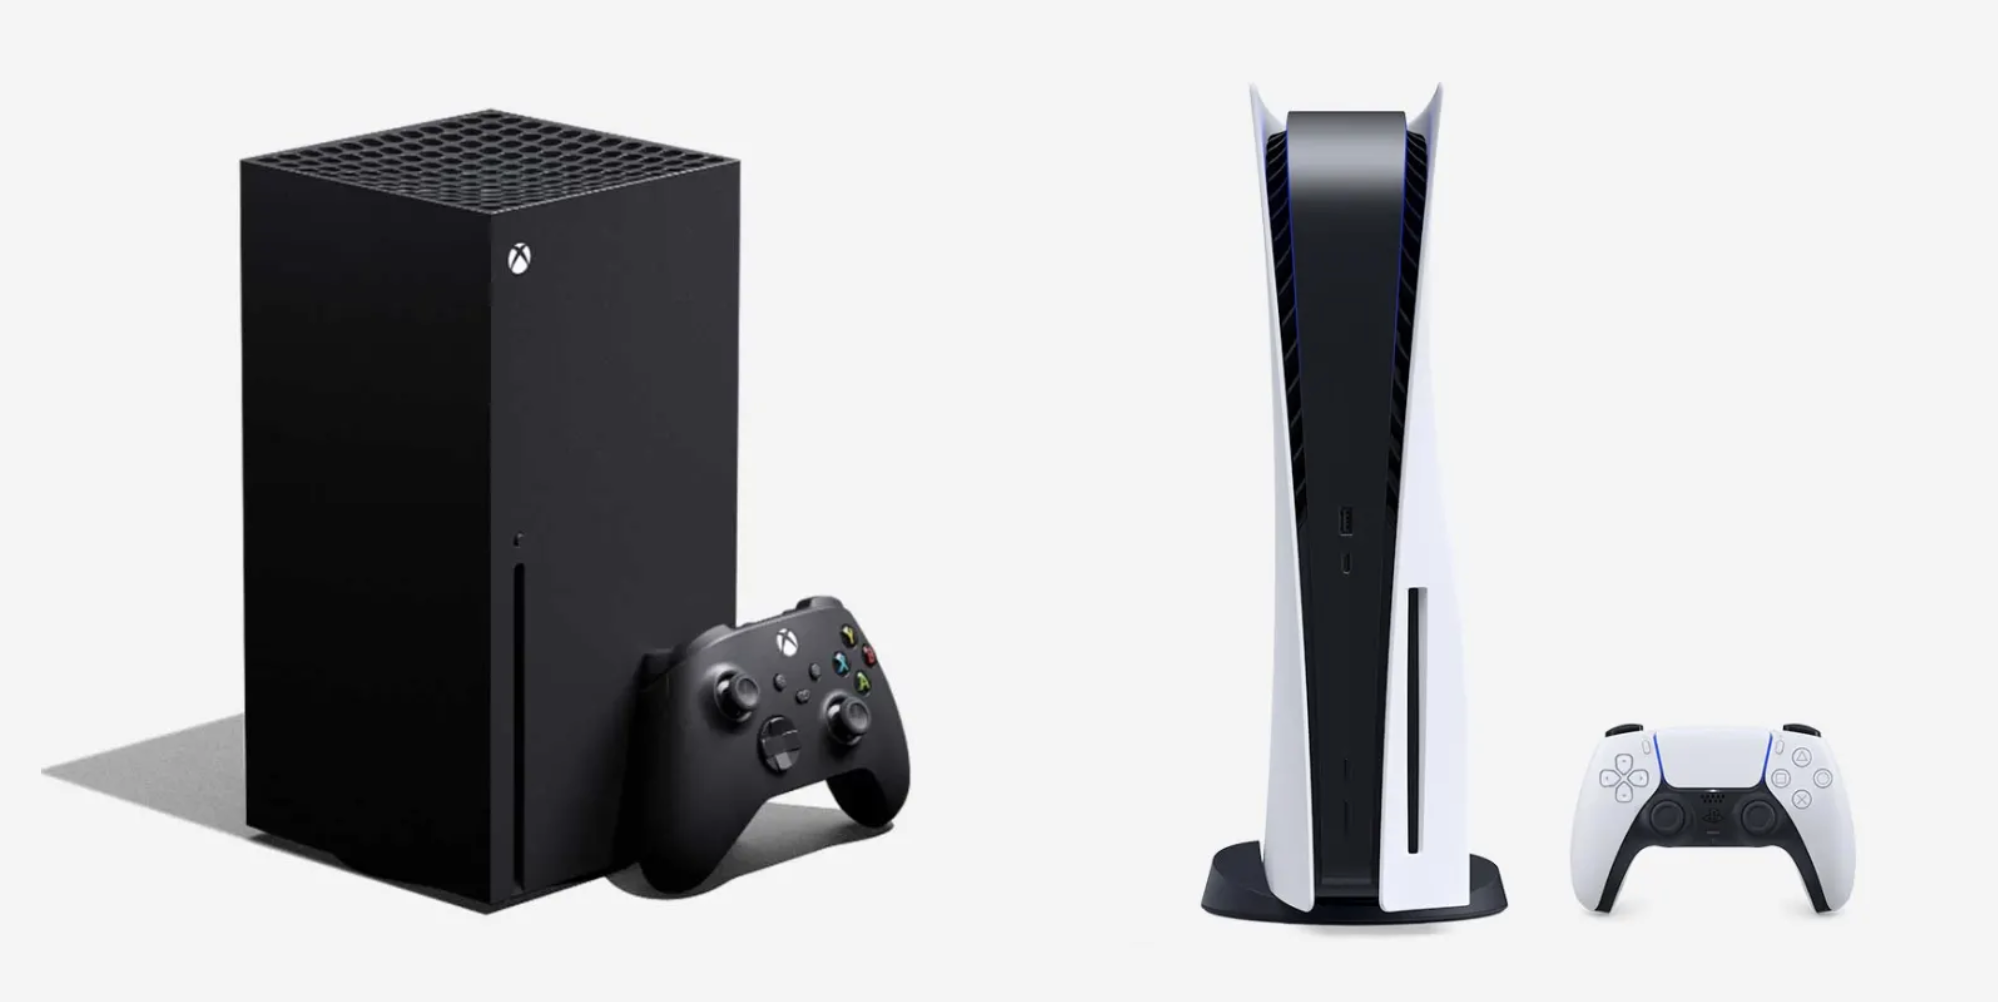 PS5 vs Xbox Series X vs Nintendo Switch: Which Is Best For Privacy?